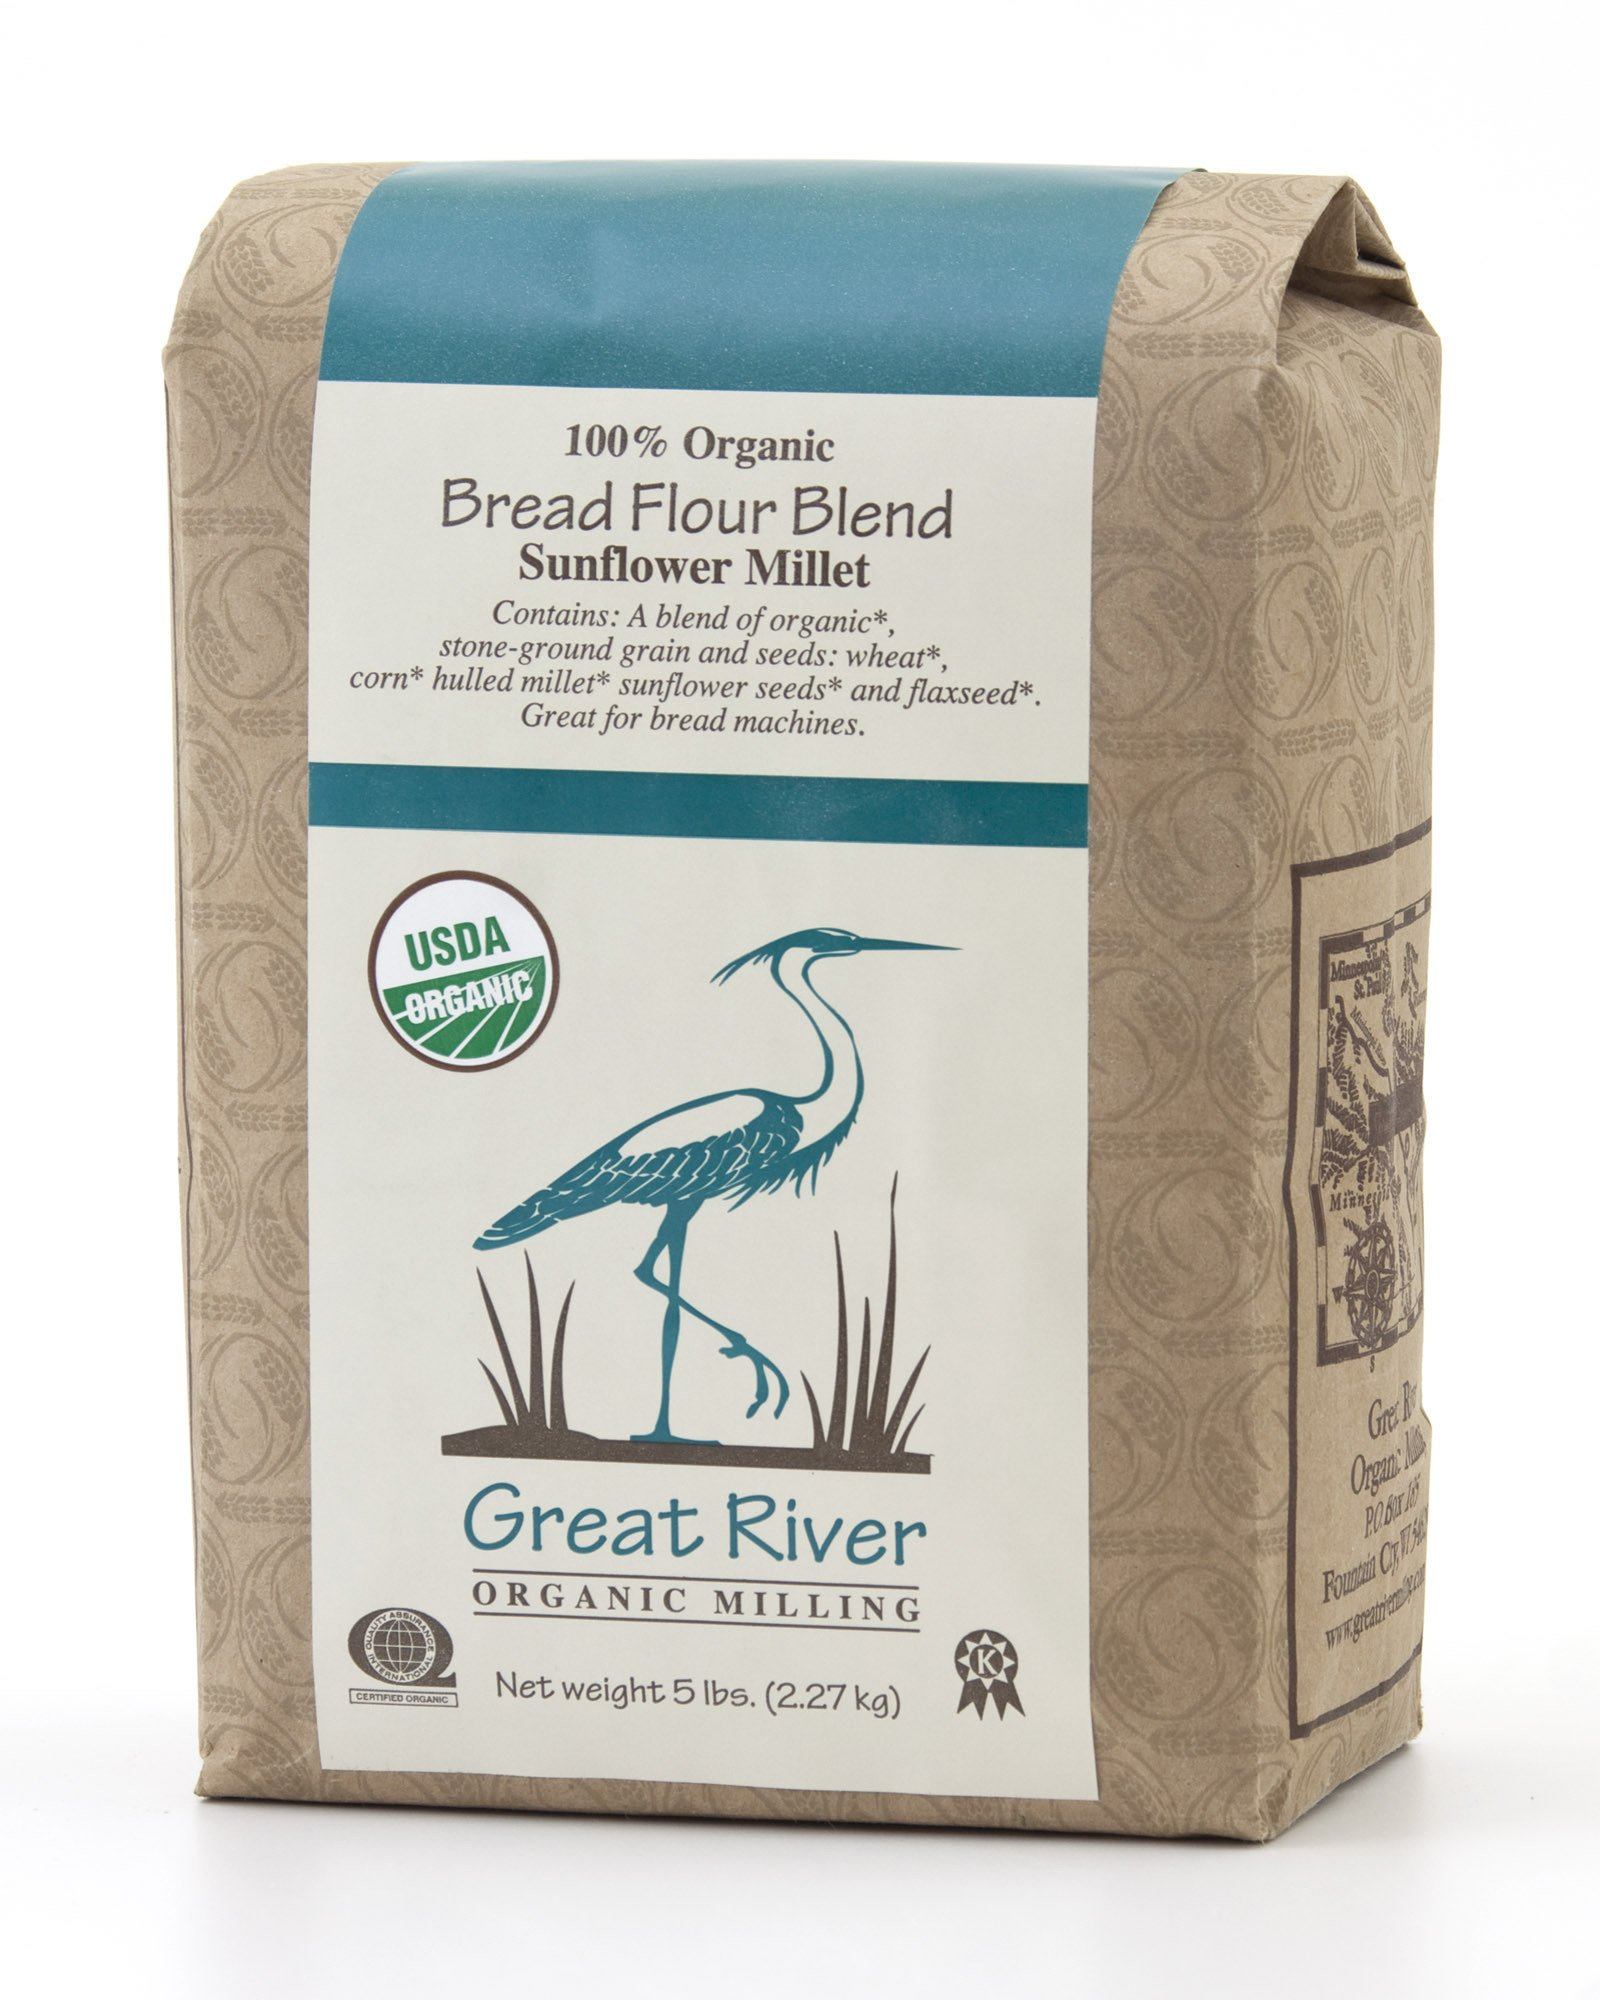 Great River Organic Milling Organic Bread Flour Blend Sunflower Millet, 5 Pound Bags (Pack of 4)